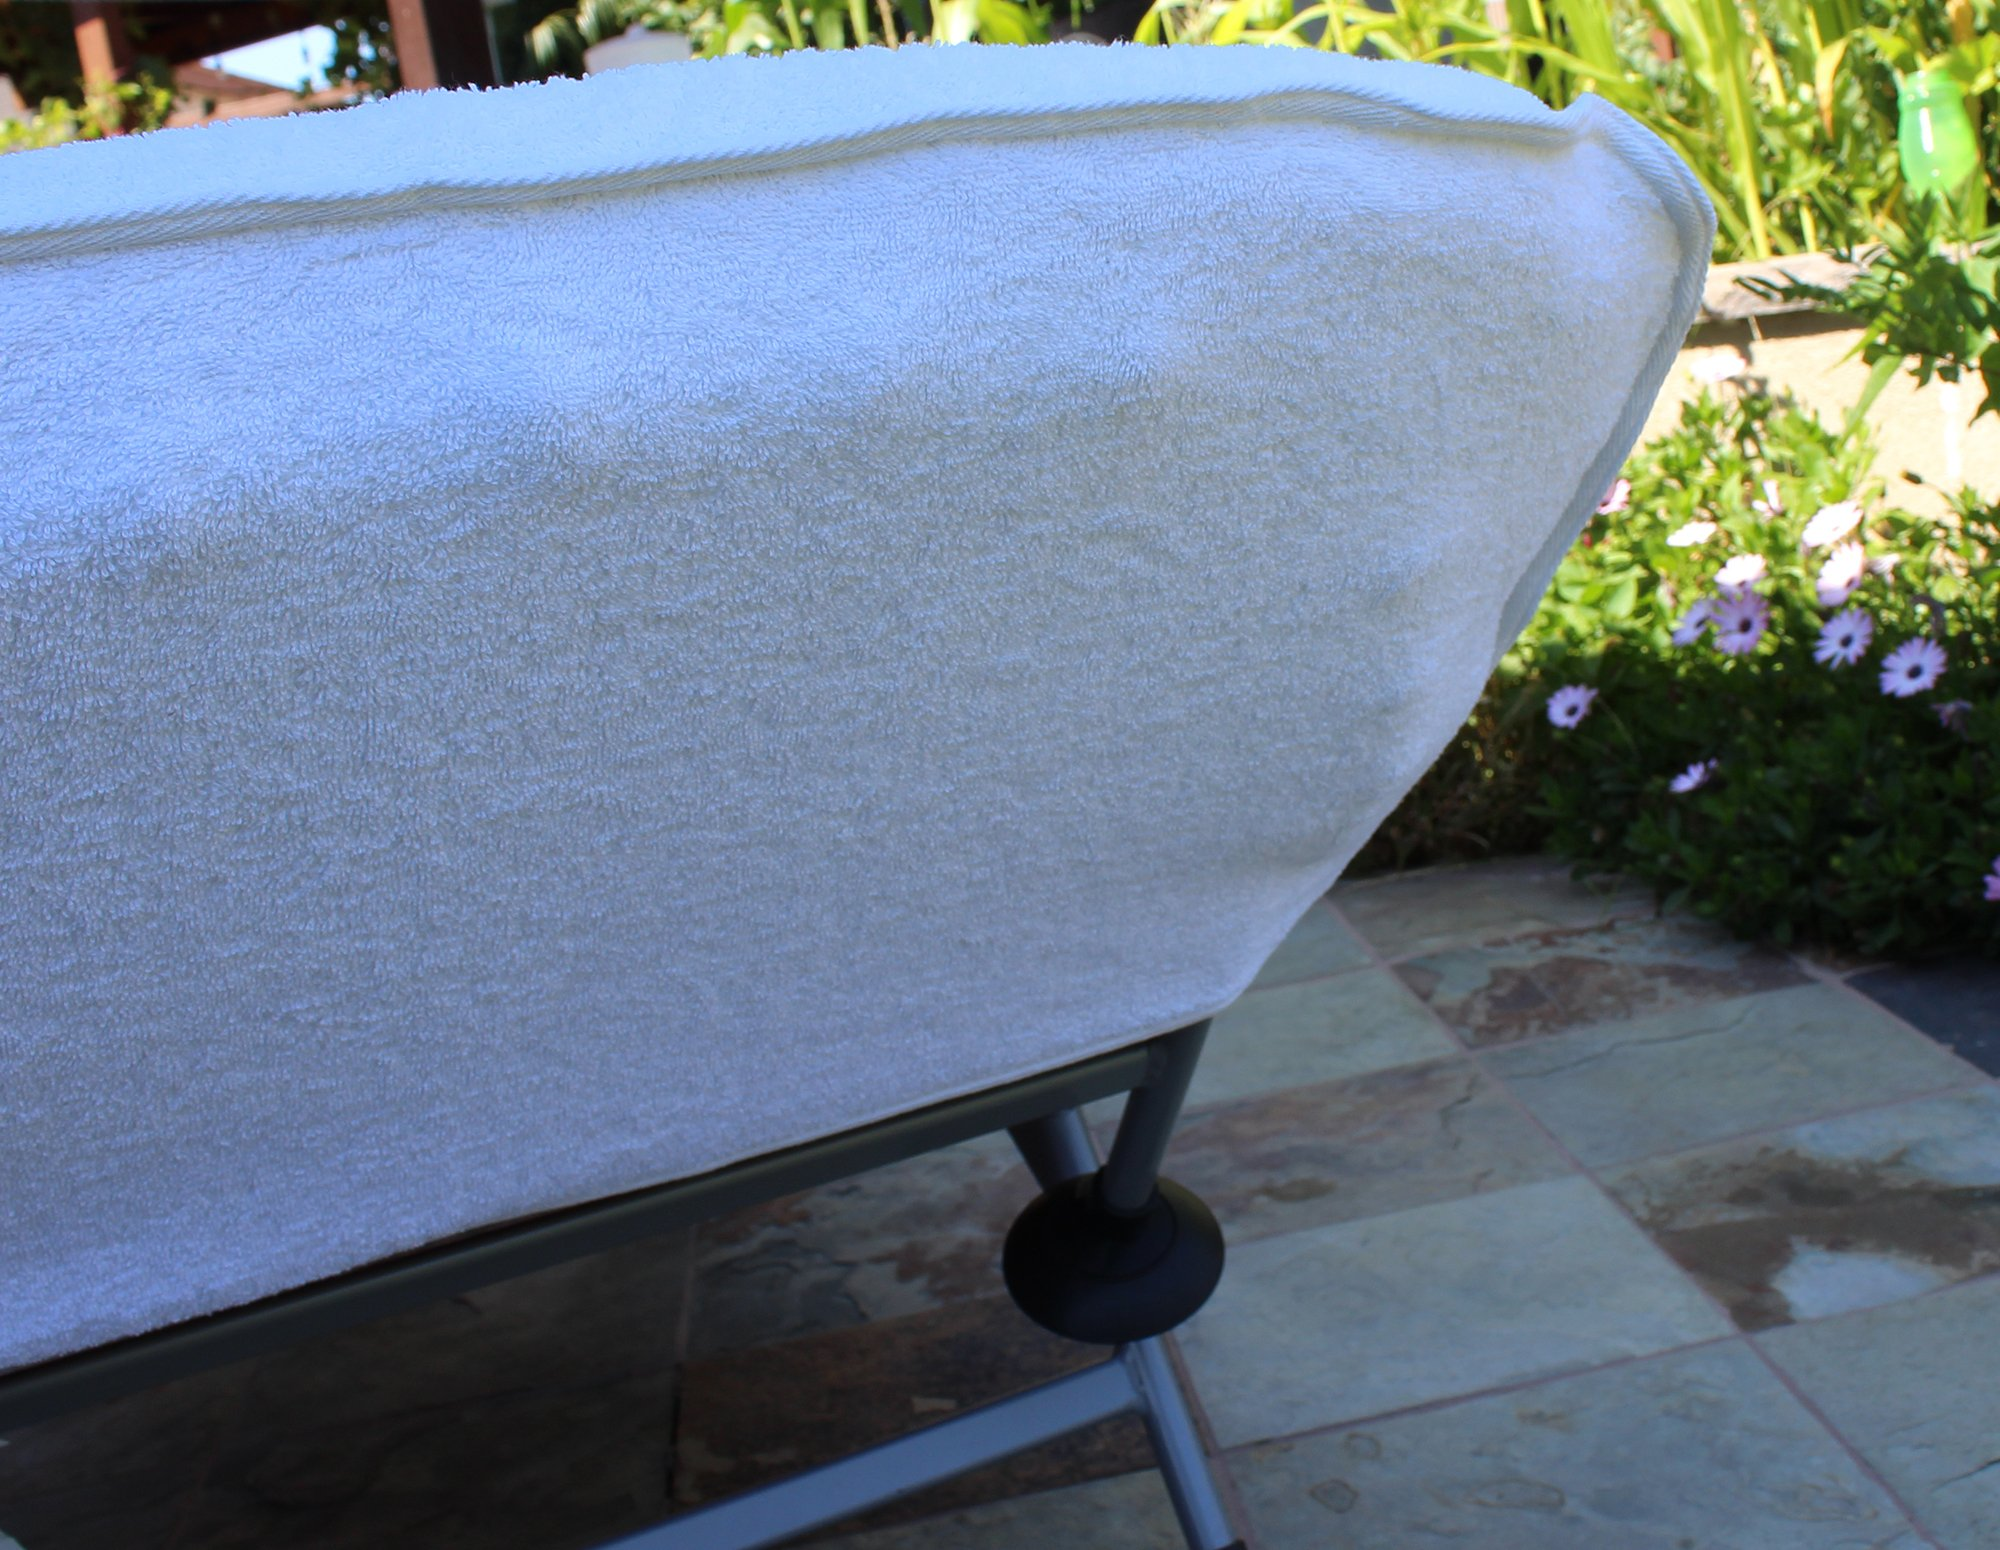 Luxury Hotel & Spa Towel Turkish Cotton Chair Lounge Cover (White, Hotel-Style) by Chakir Turkish Linens (Image #3)